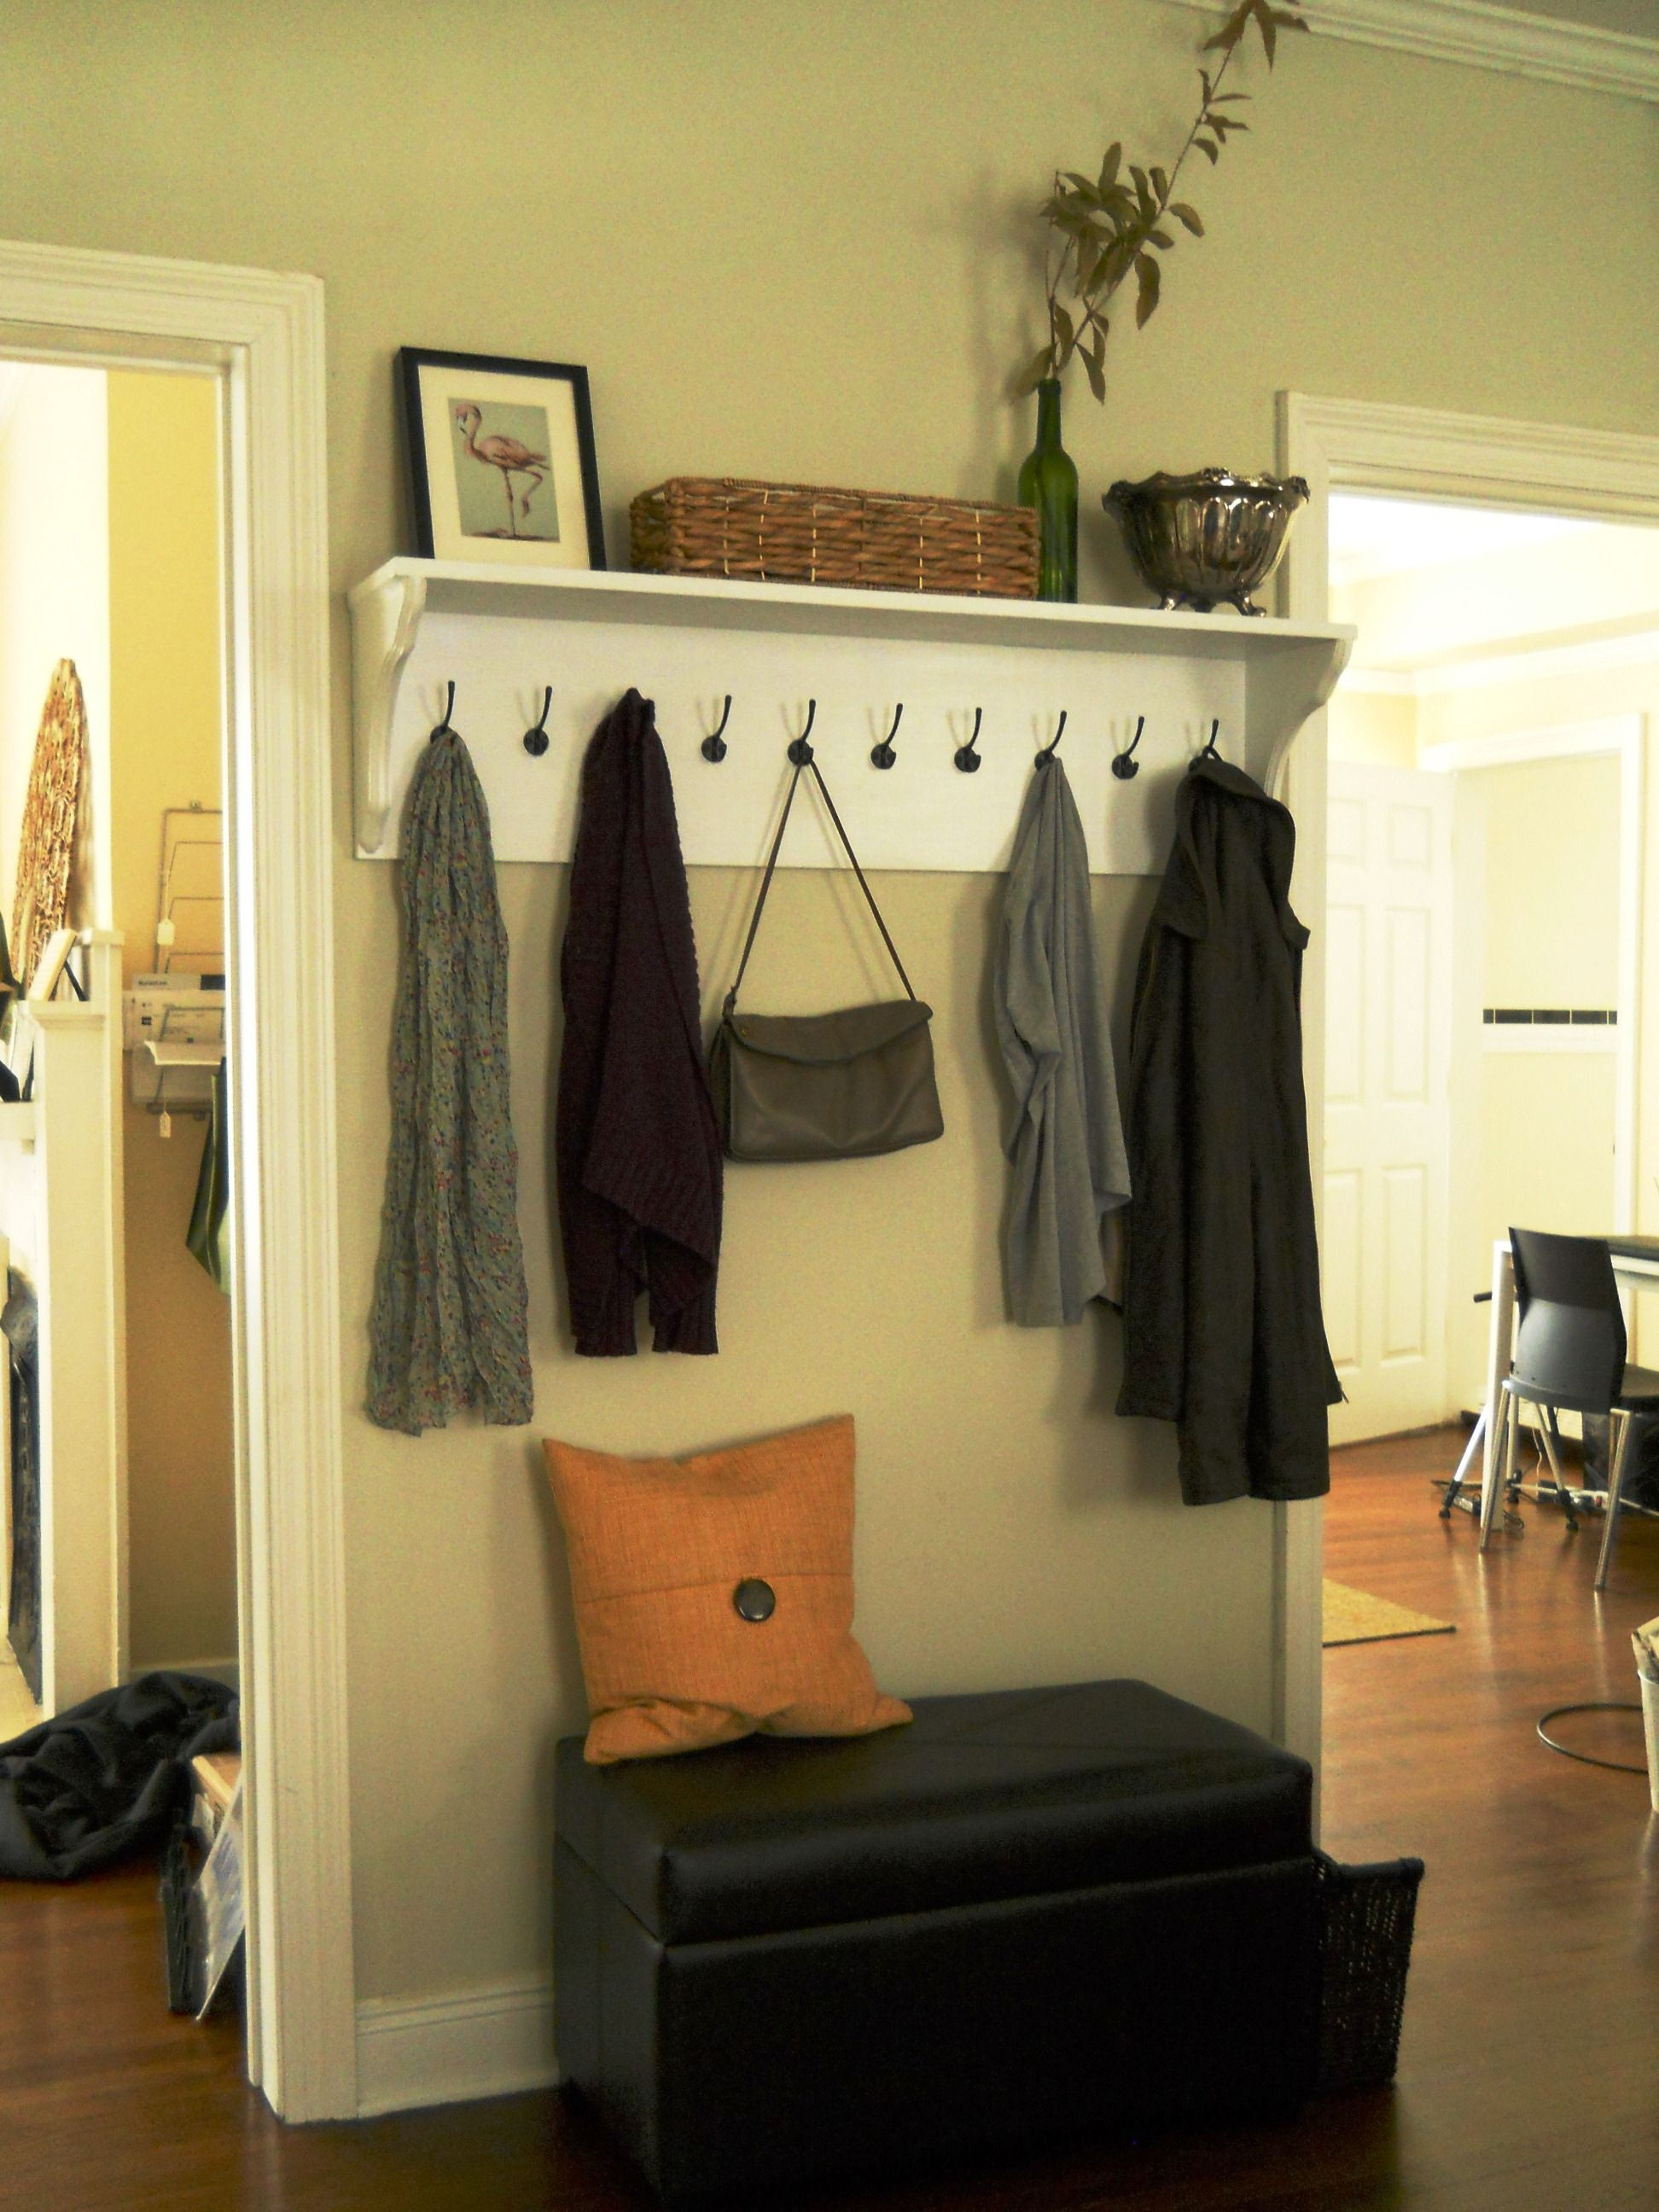 Decorating For Entrance Ways Diy Entry Shelf With Hooks Tutorial Charlotte Living Well On